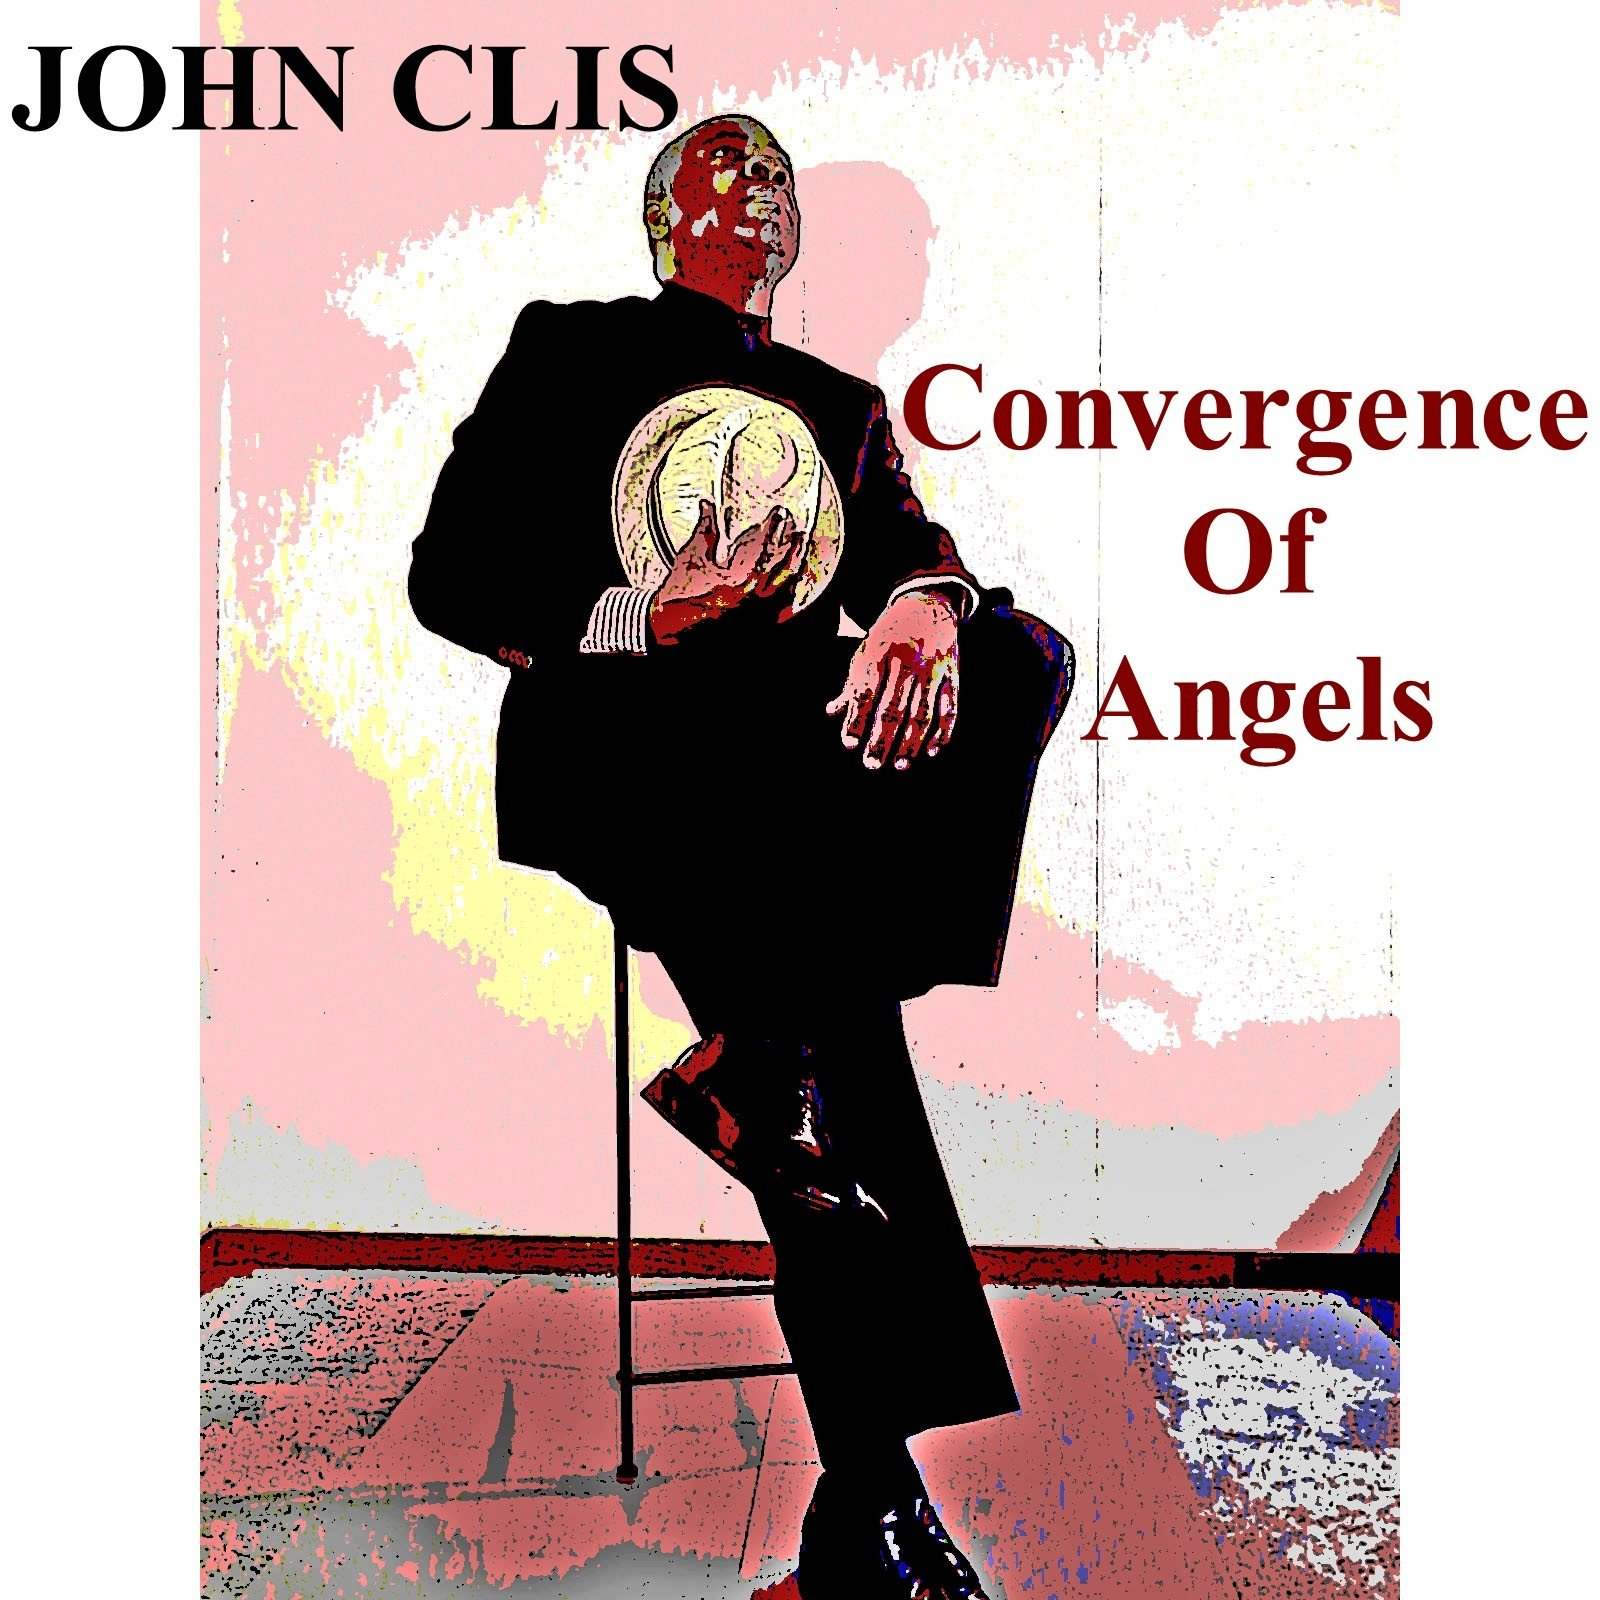 https://0201.nccdn.net/4_2/000/000/024/ec9/John-Clis---Convergence-Of-Angels---Picture-1-1600x1600.jpg